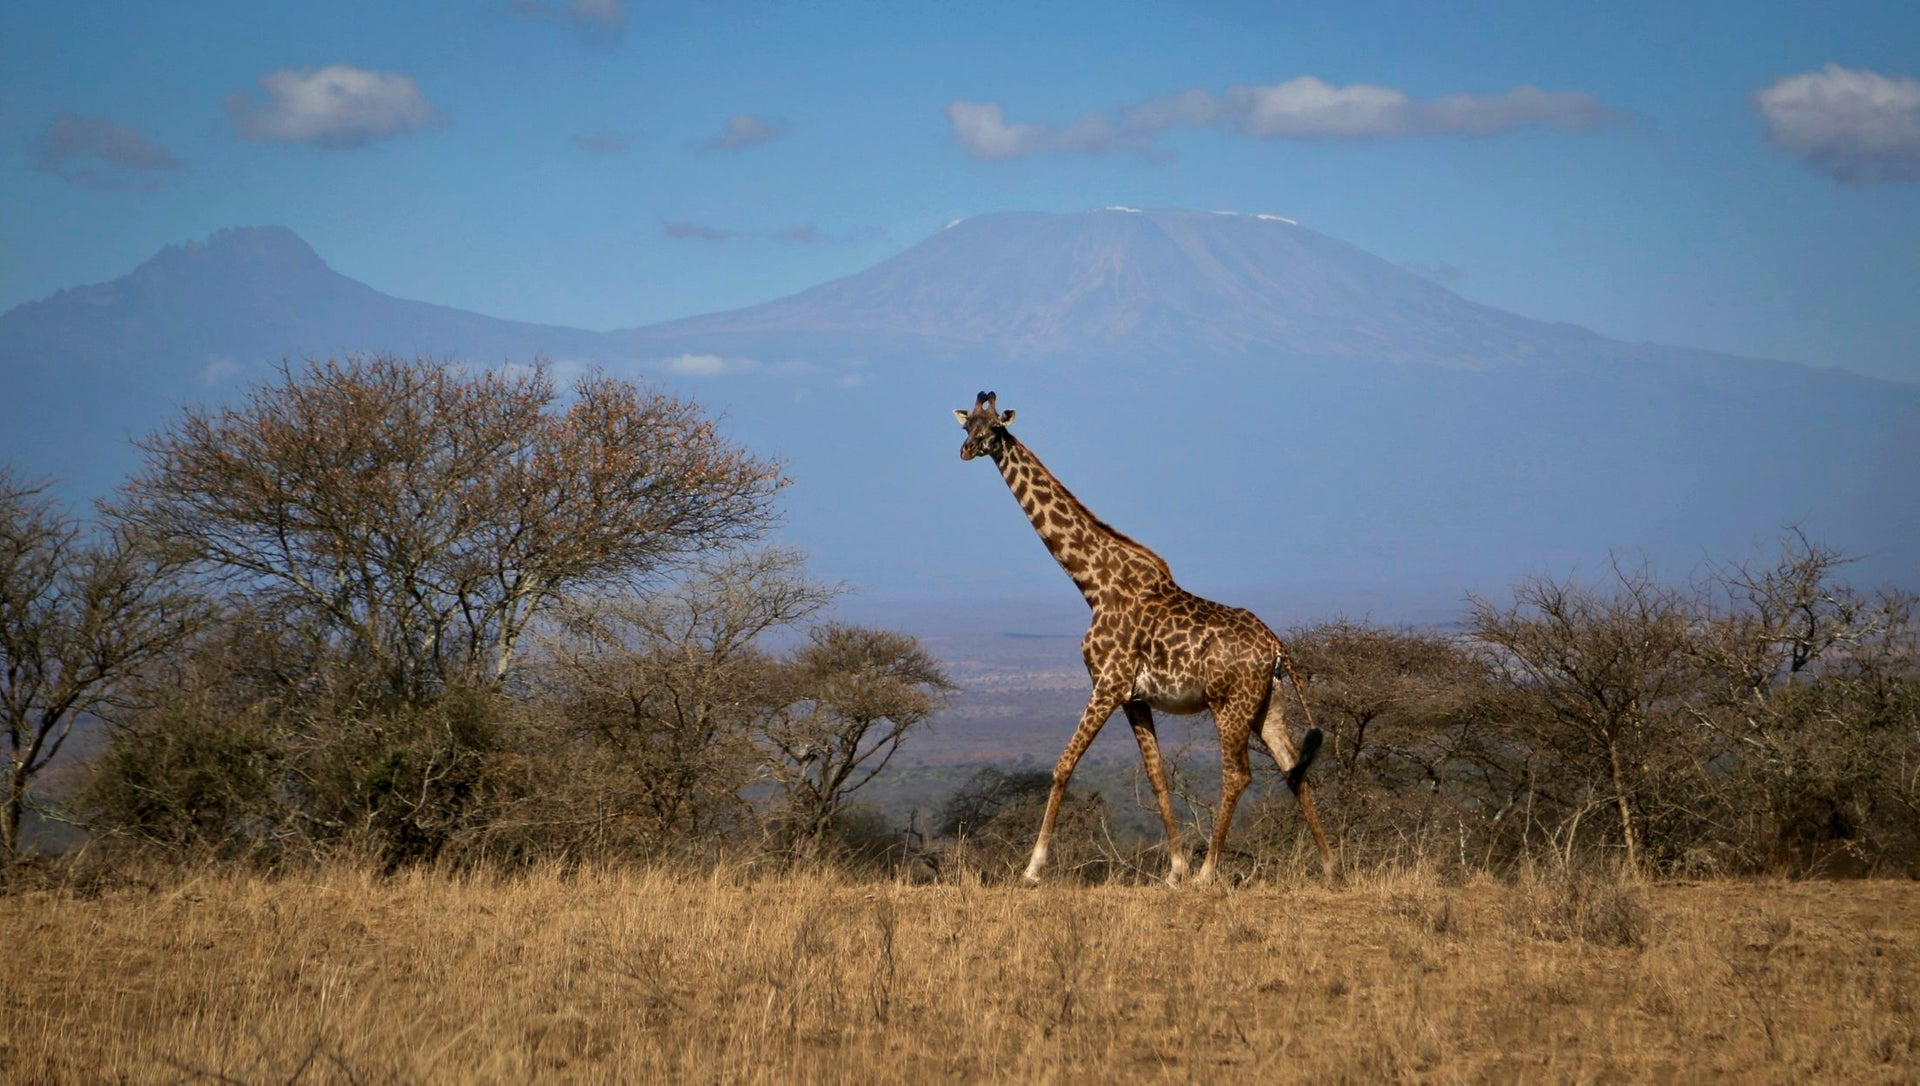 African savannah: Photo shows a giraffe standing on grassland with sparse trees and mountains in teh background